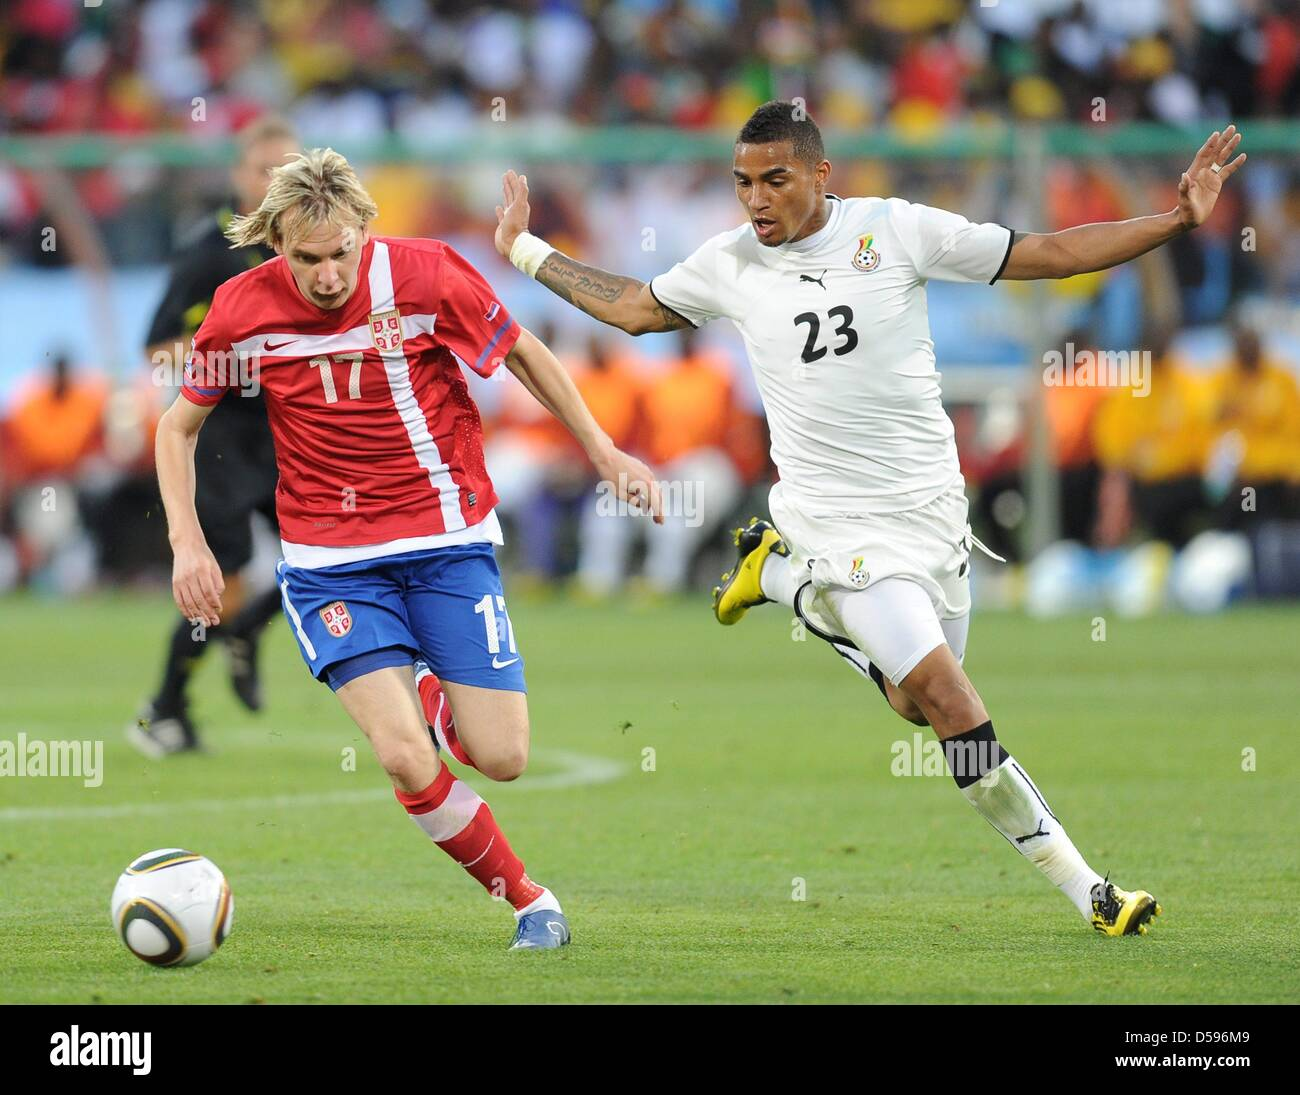 Ghana s Kevin Prince Boateng (R) vies for the ball with Serbia s Milos  Krasic during the 2010 FIFA World Cup group D match between Serbia and  Ghana at ... 9c69cabeda543